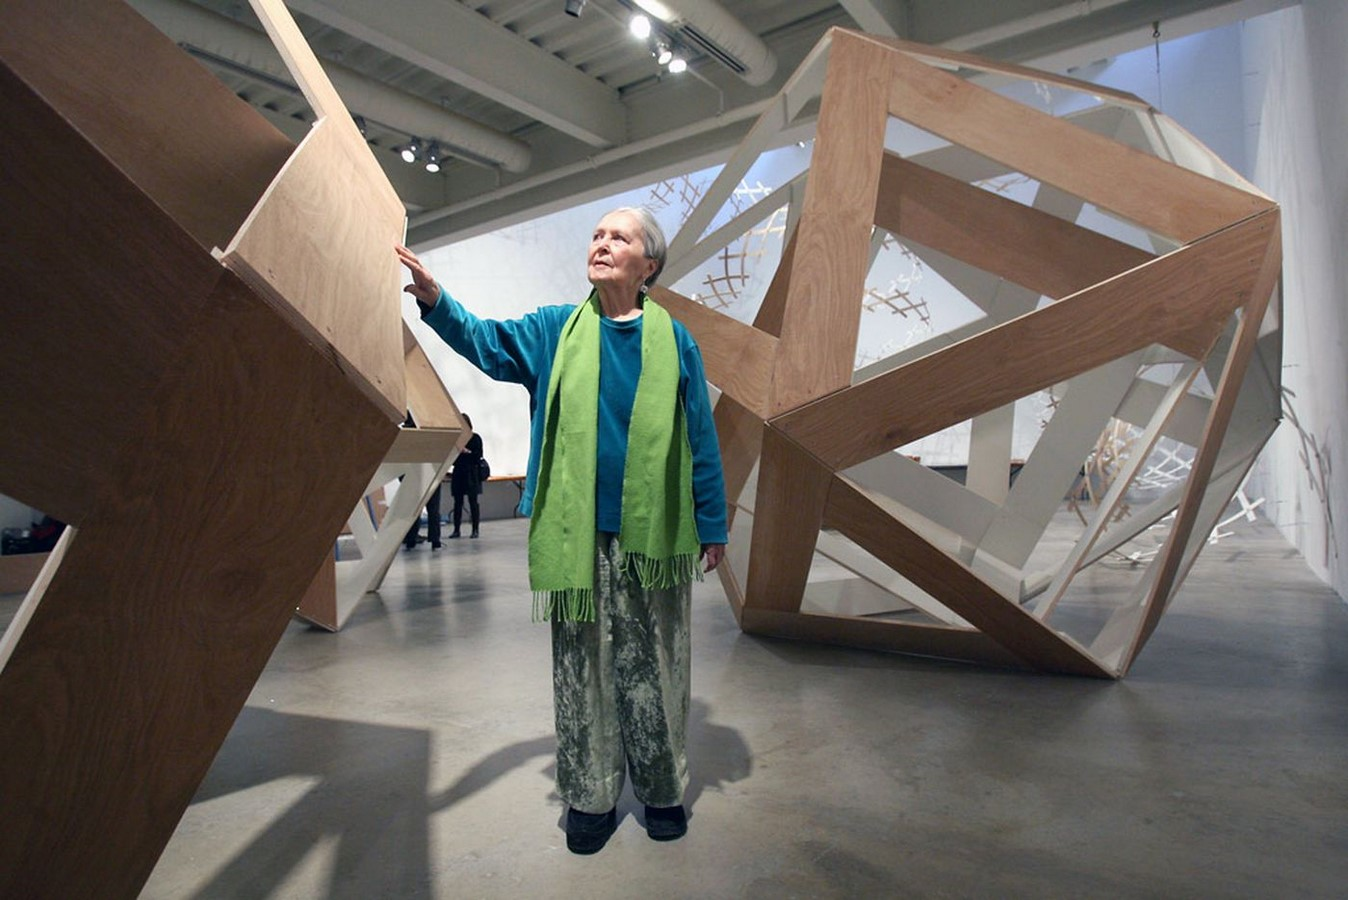 Anne Tyng pictured with large sculptures of geometries